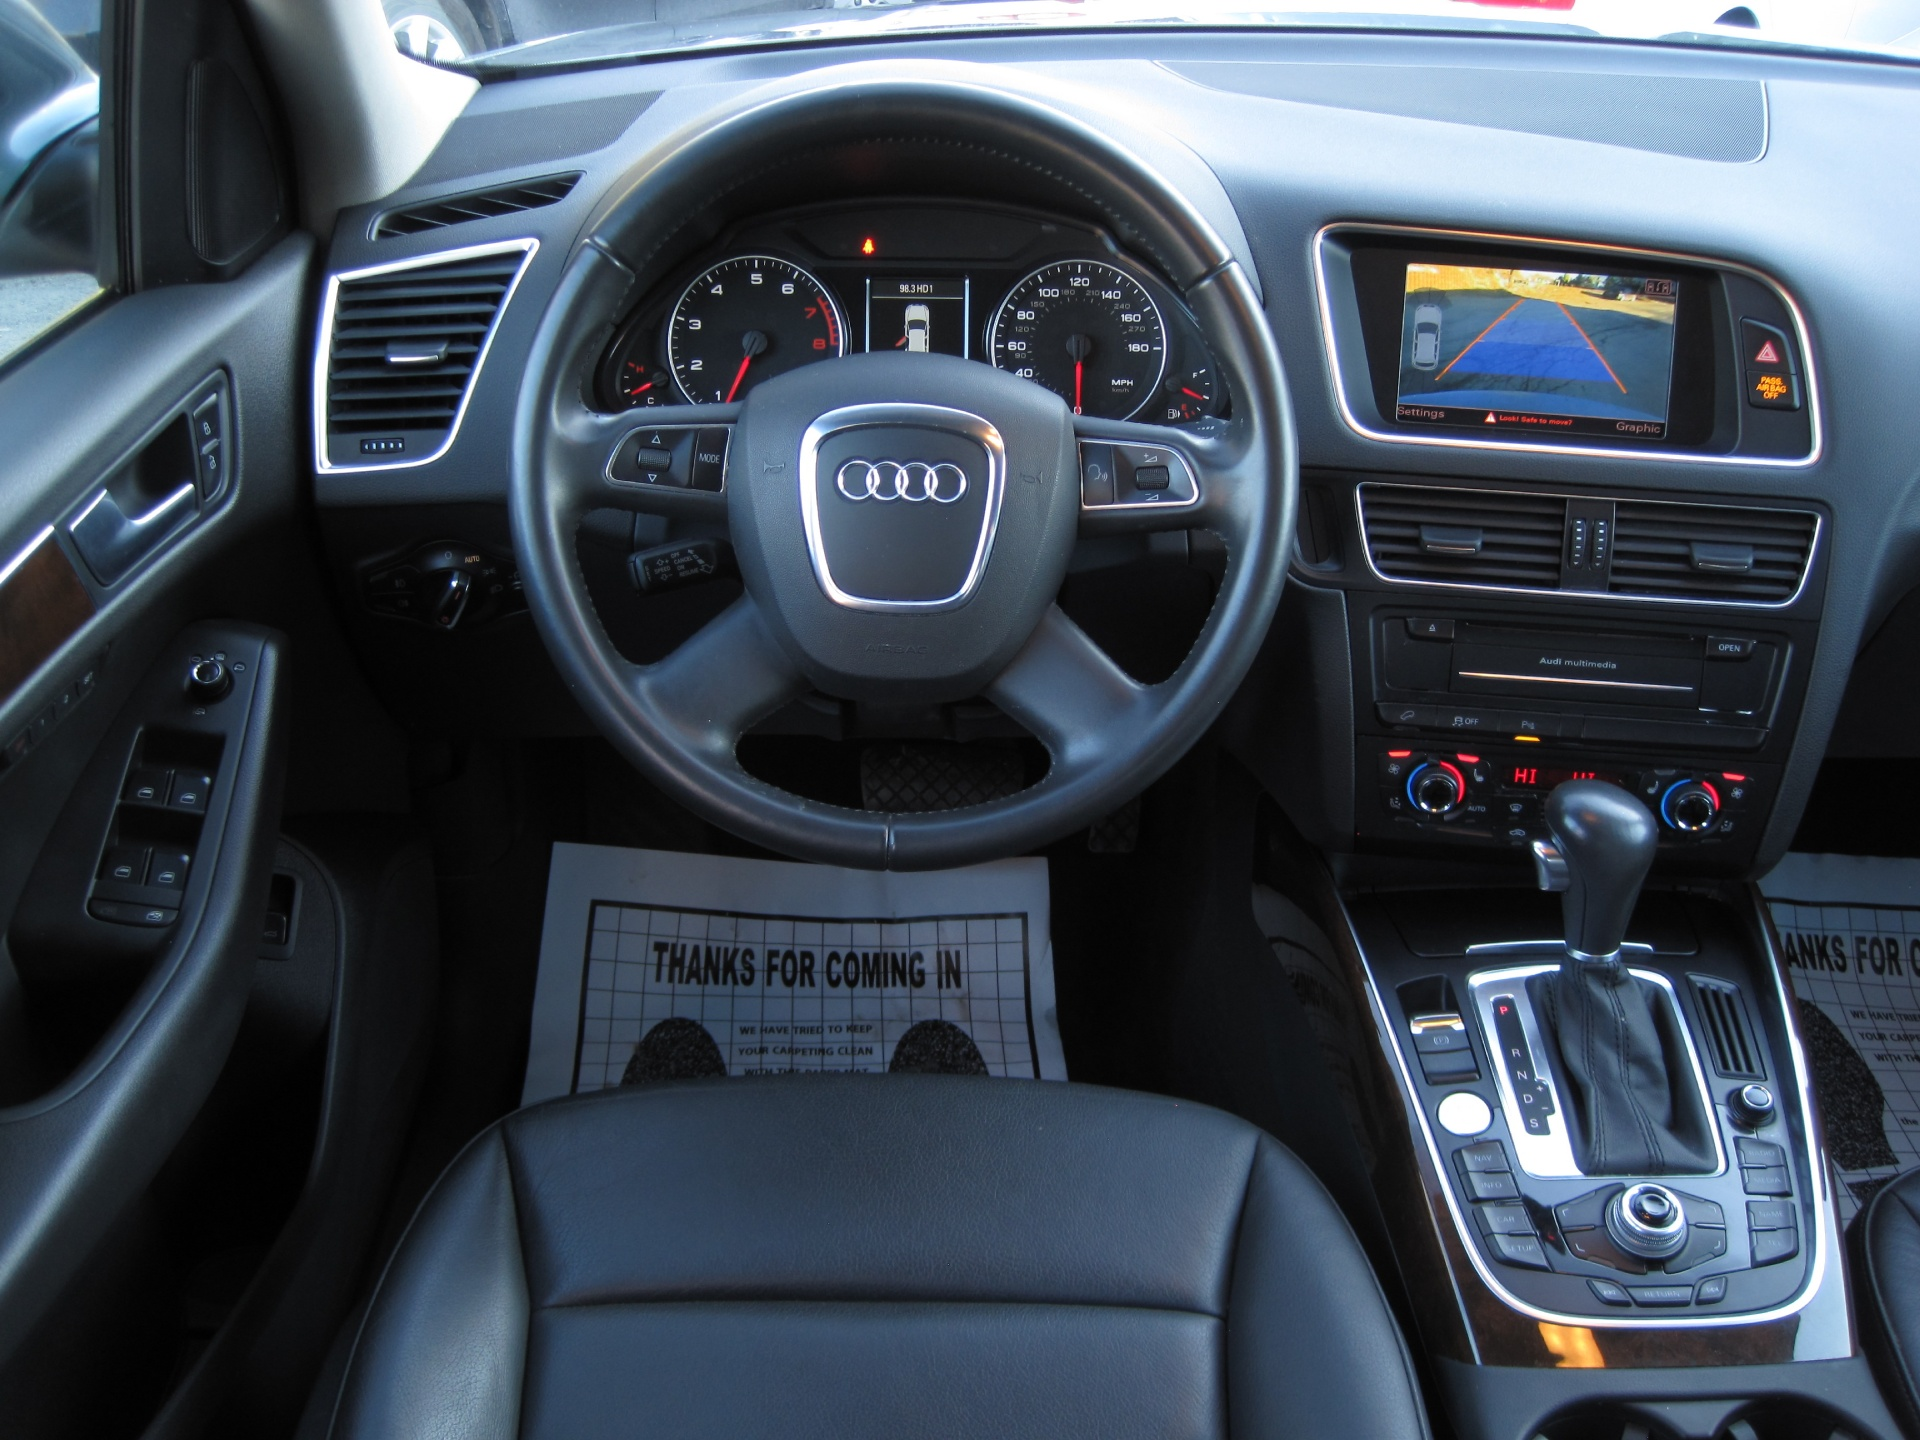 2012 audi q5 3 2 quattro premium plus mmi navigation plus. Black Bedroom Furniture Sets. Home Design Ideas